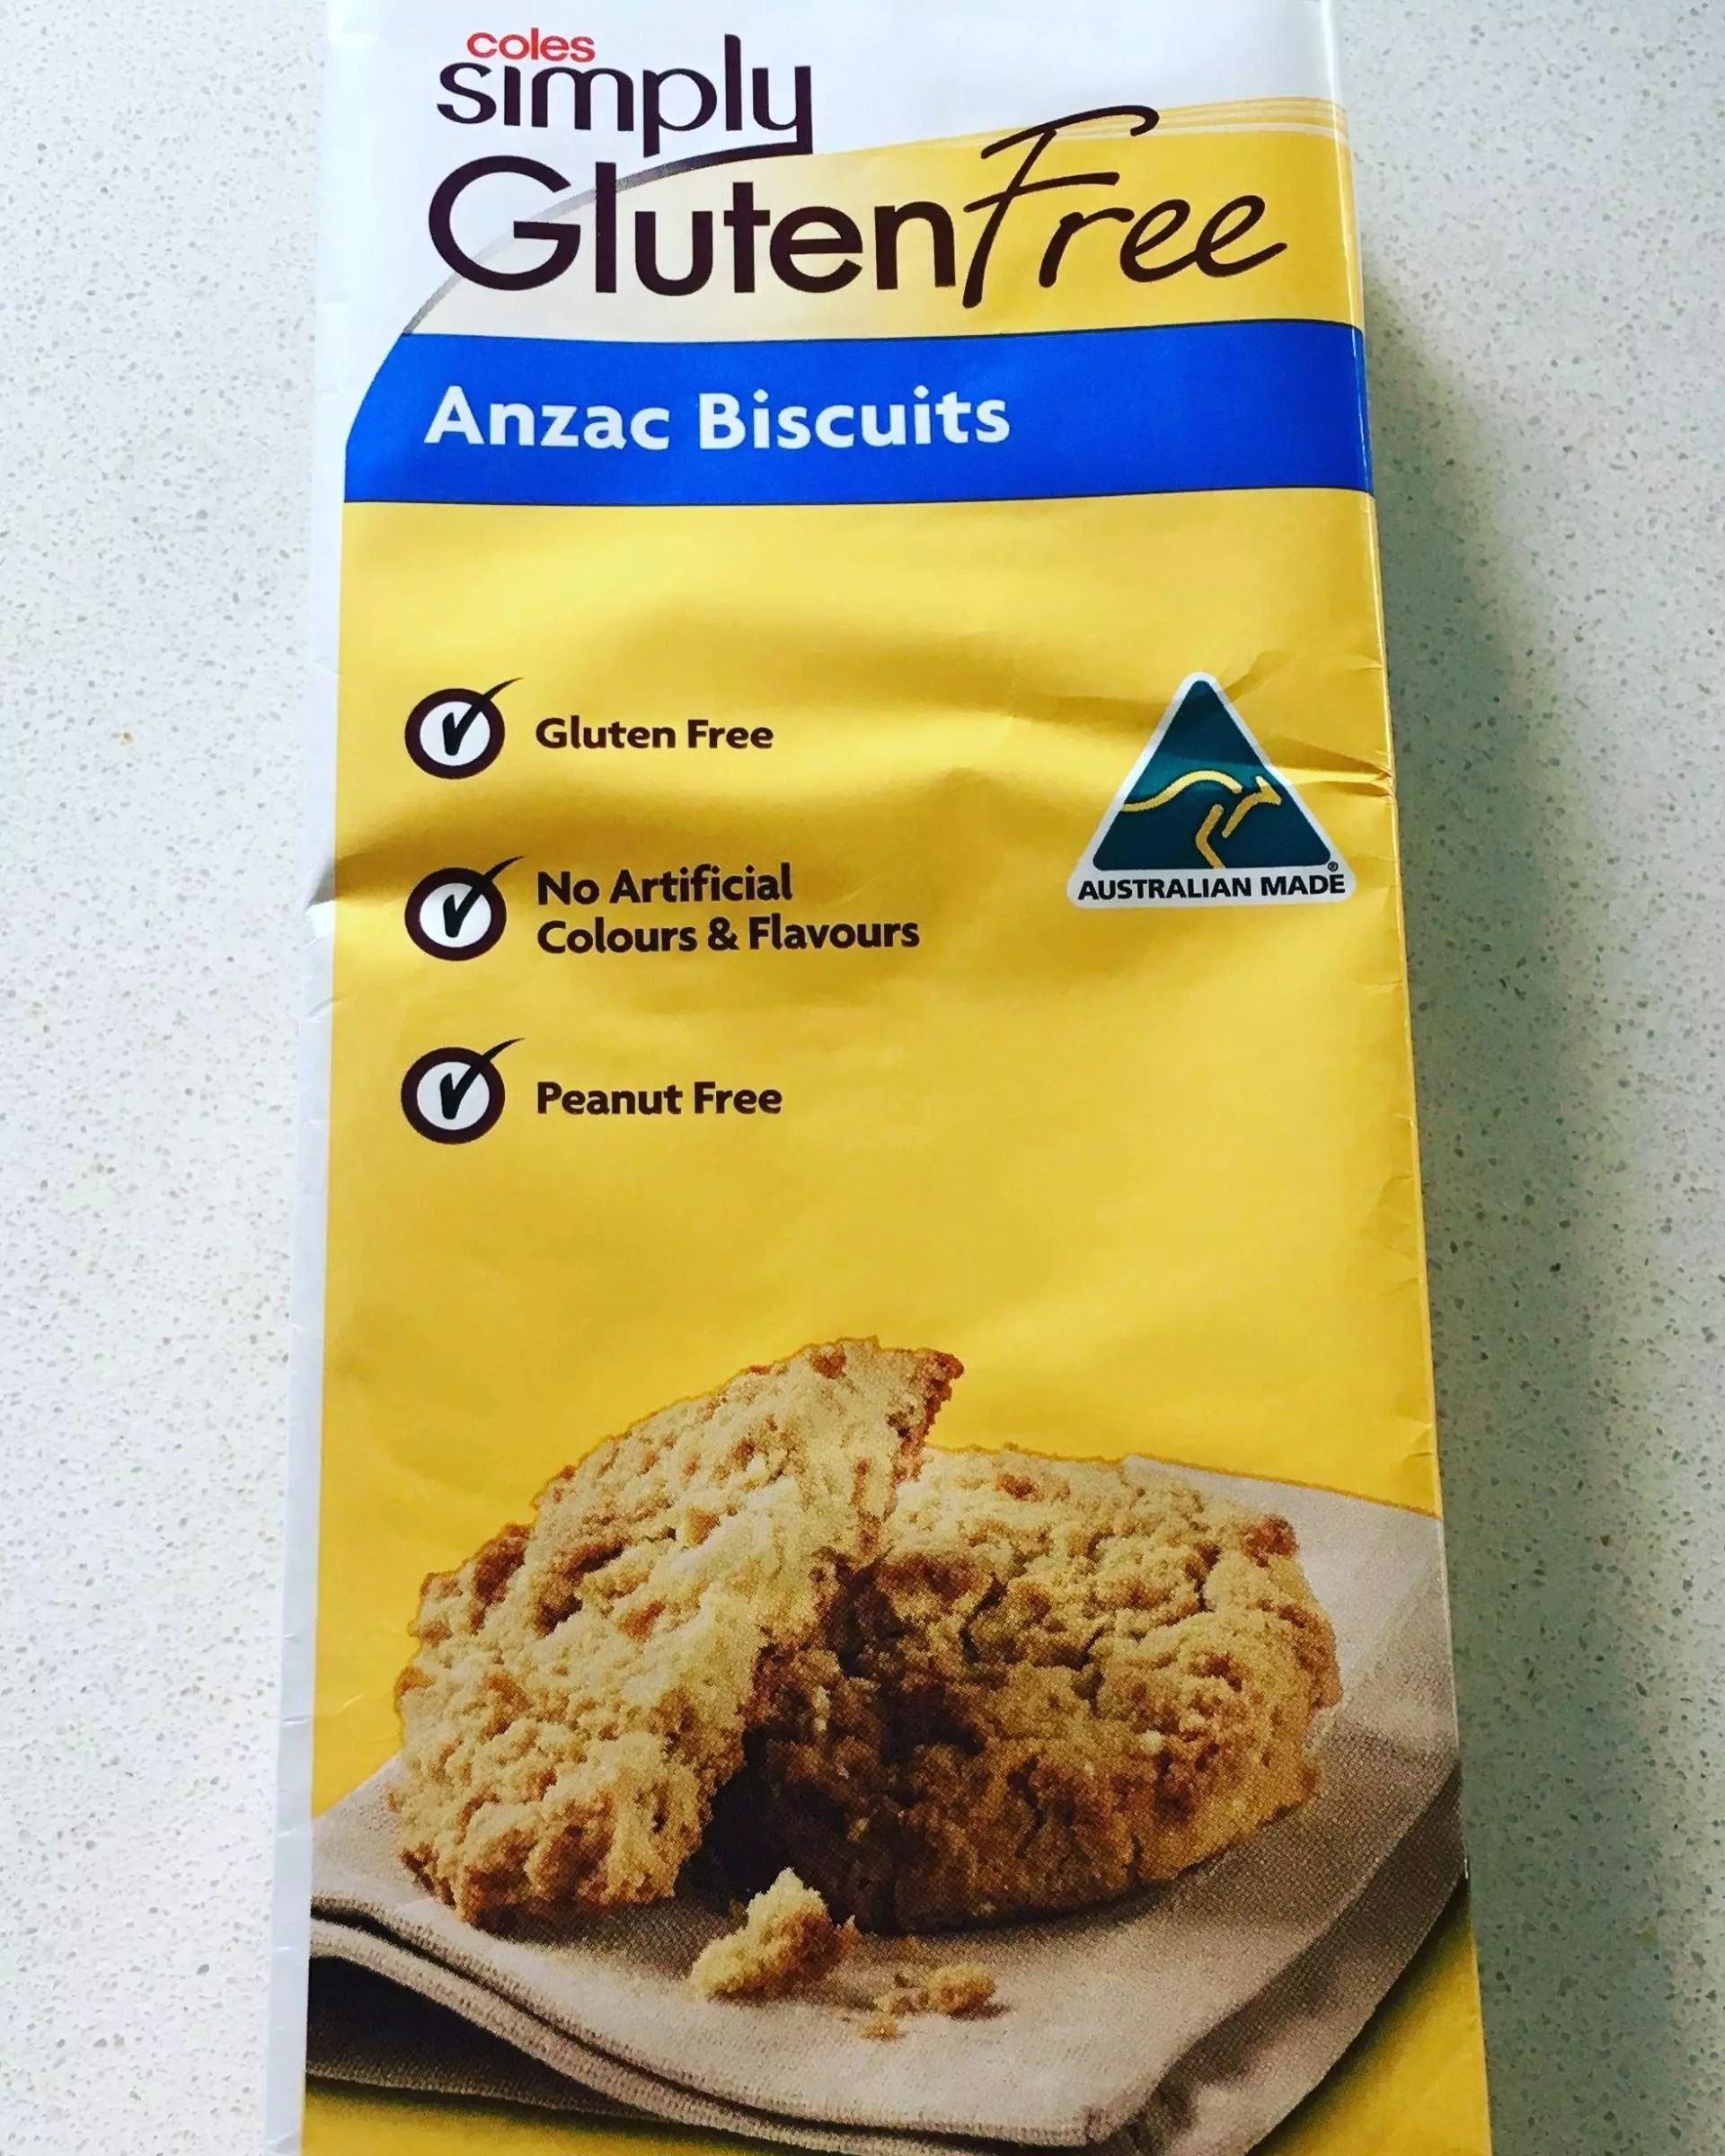 adventures of a gluten free globetrekker Went - Ate - Loved: January 2017 Monthly Round Up